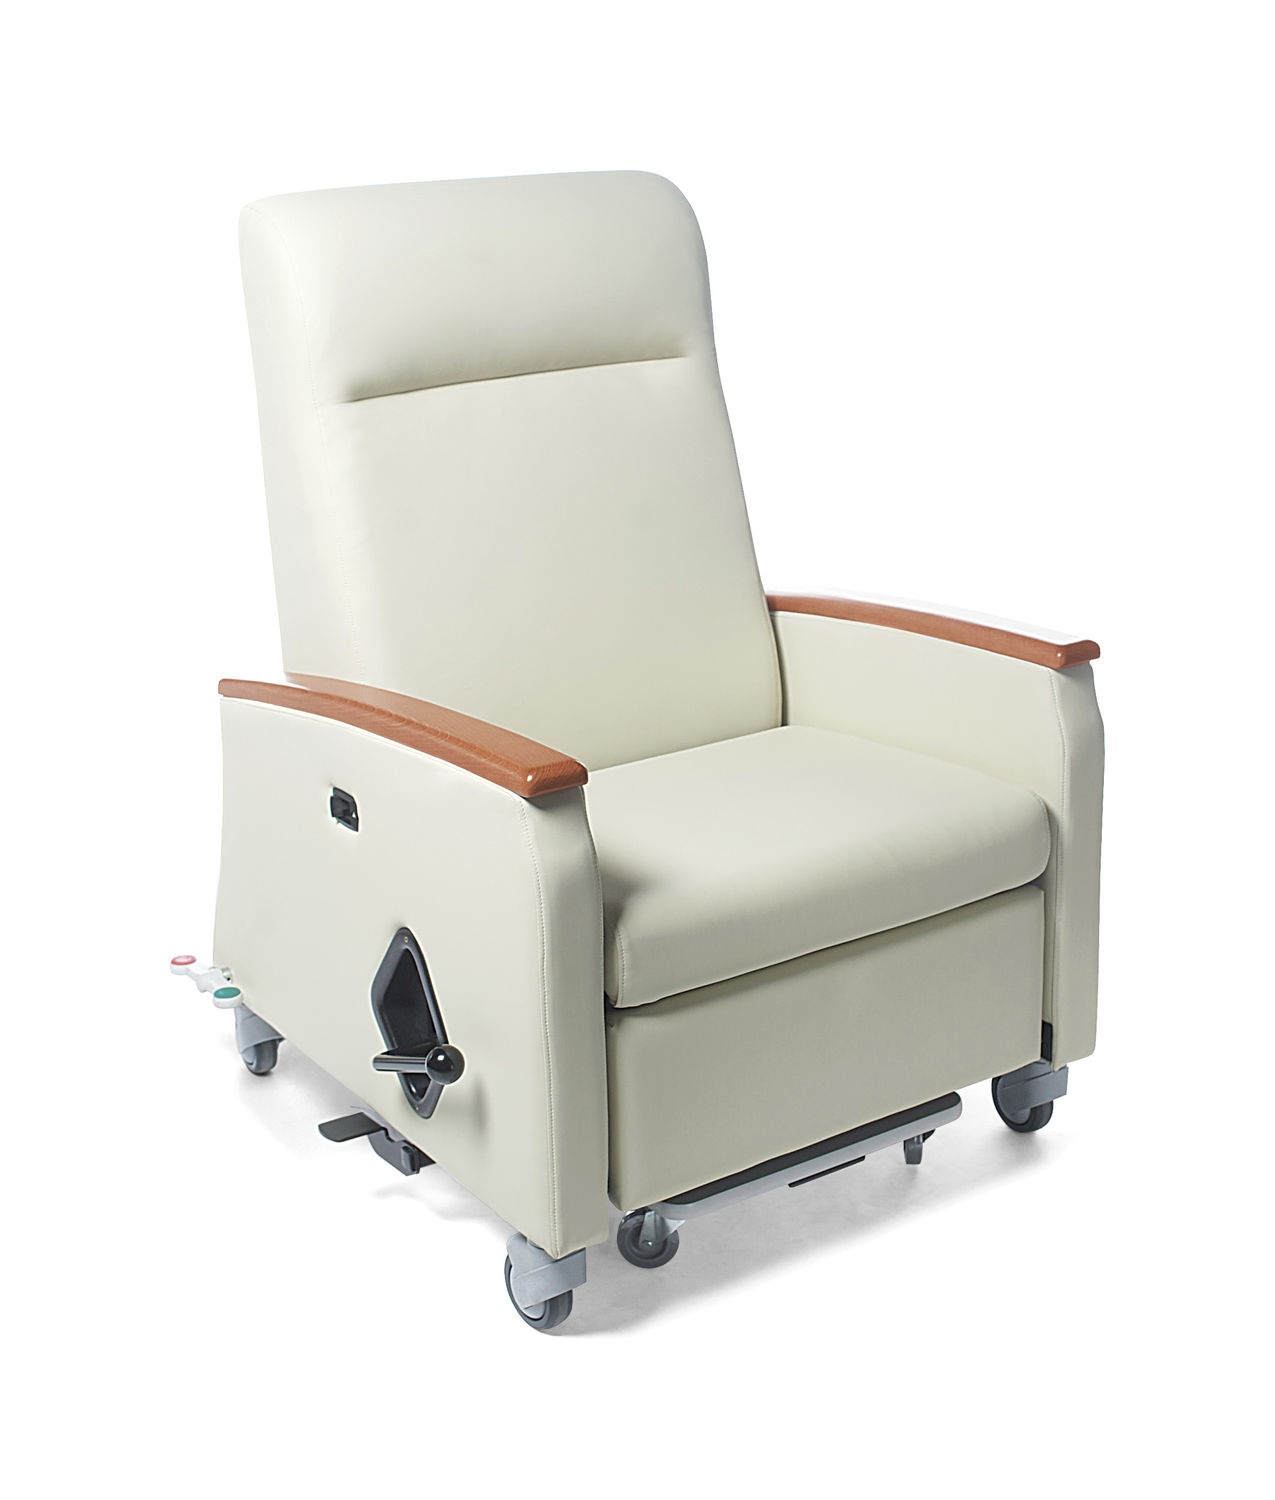 Polyurethane medical chair / reclining / electric / white OASIS Stance Healthcare ...  sc 1 st  ArchiExpo & Polyurethane medical chair / reclining / electric / white - OASIS ... islam-shia.org